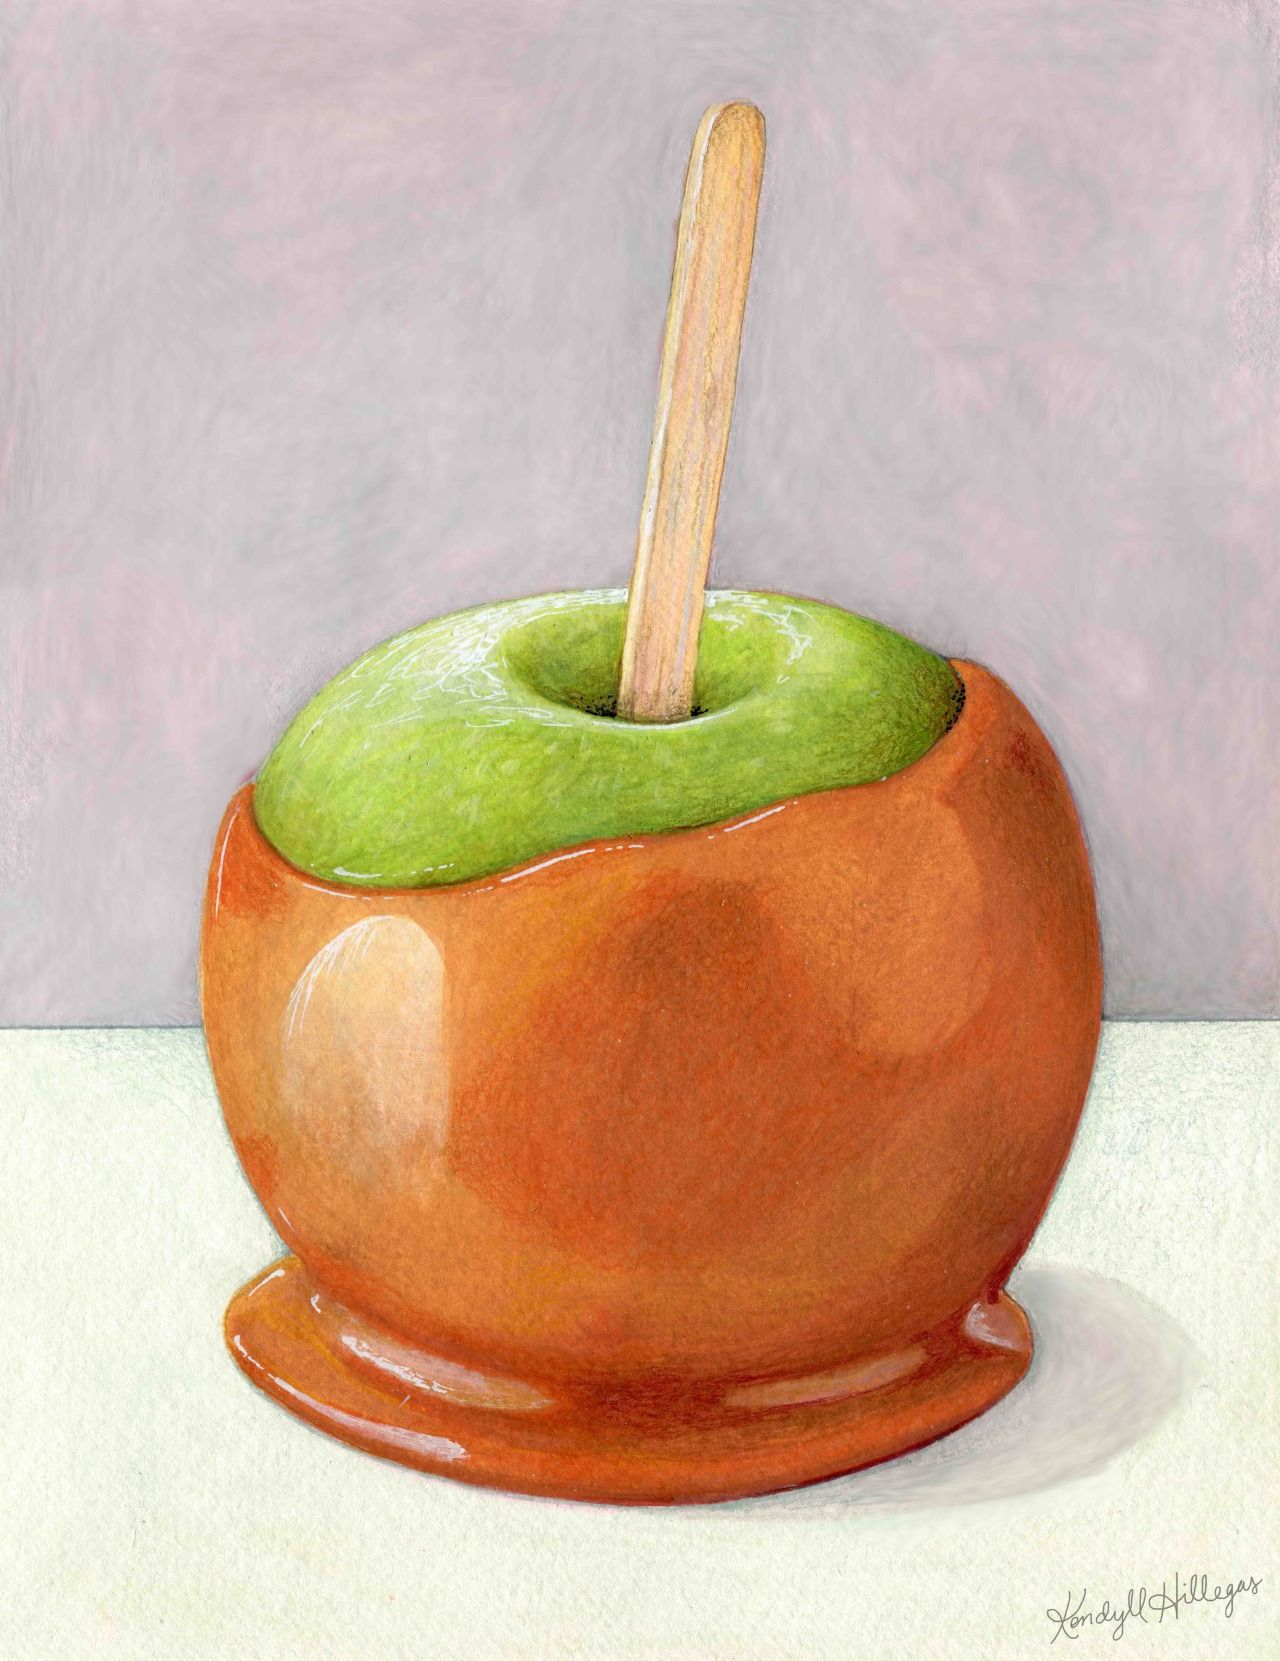 Caramel Apple By Kendyll Hillegas 9x12 Mixed Media On Paper Apple Illustration Caramel Apples Apple Painting